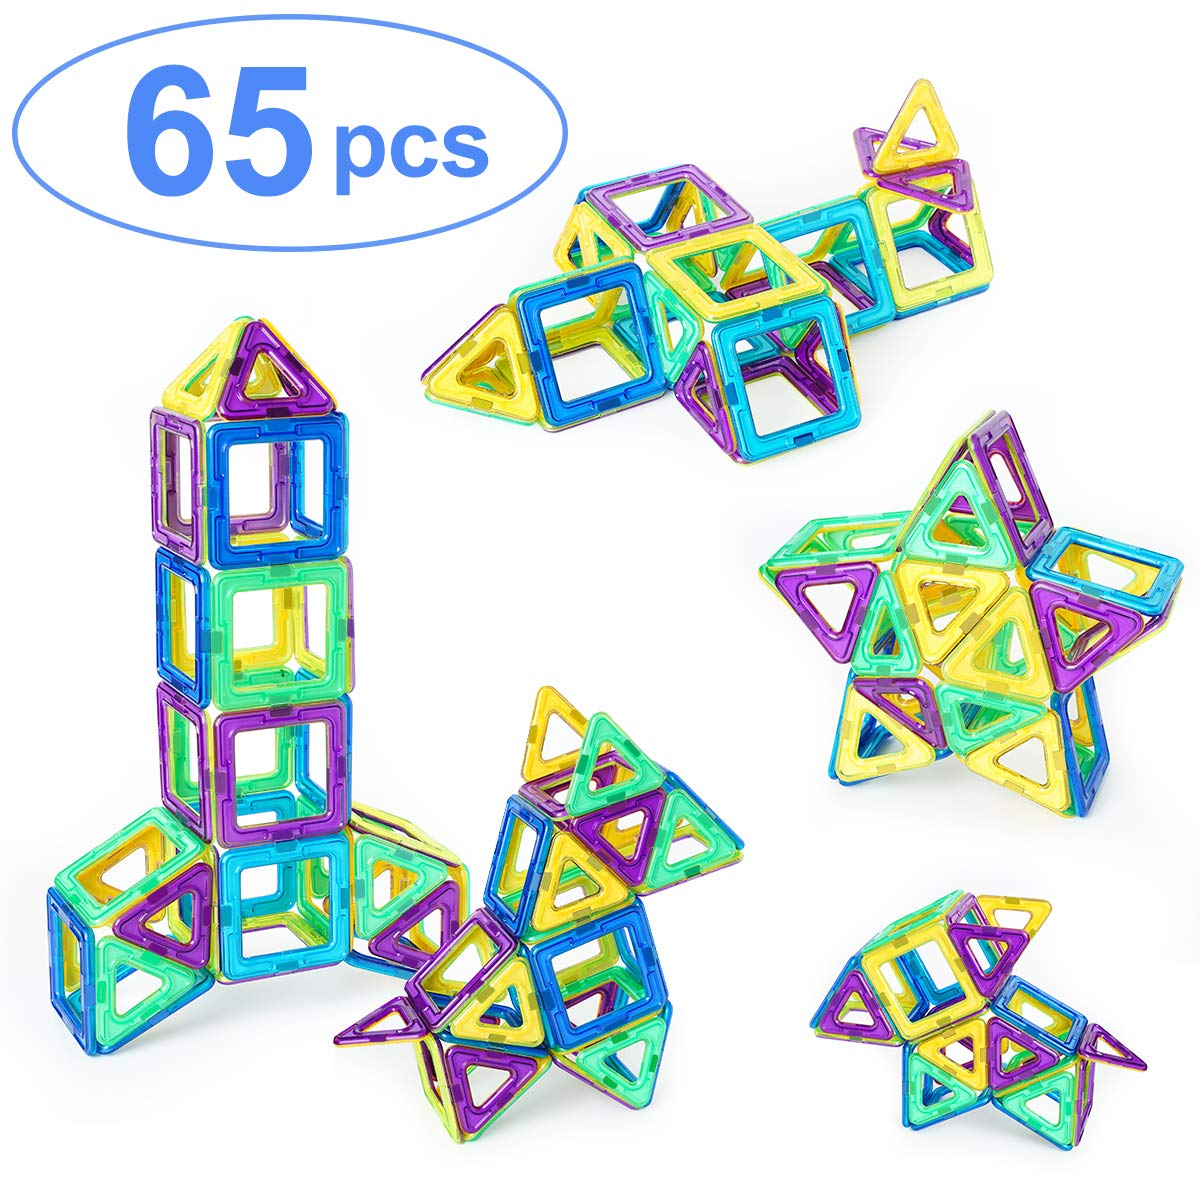 Ranphykx Magnetic Blocks With 65 Item